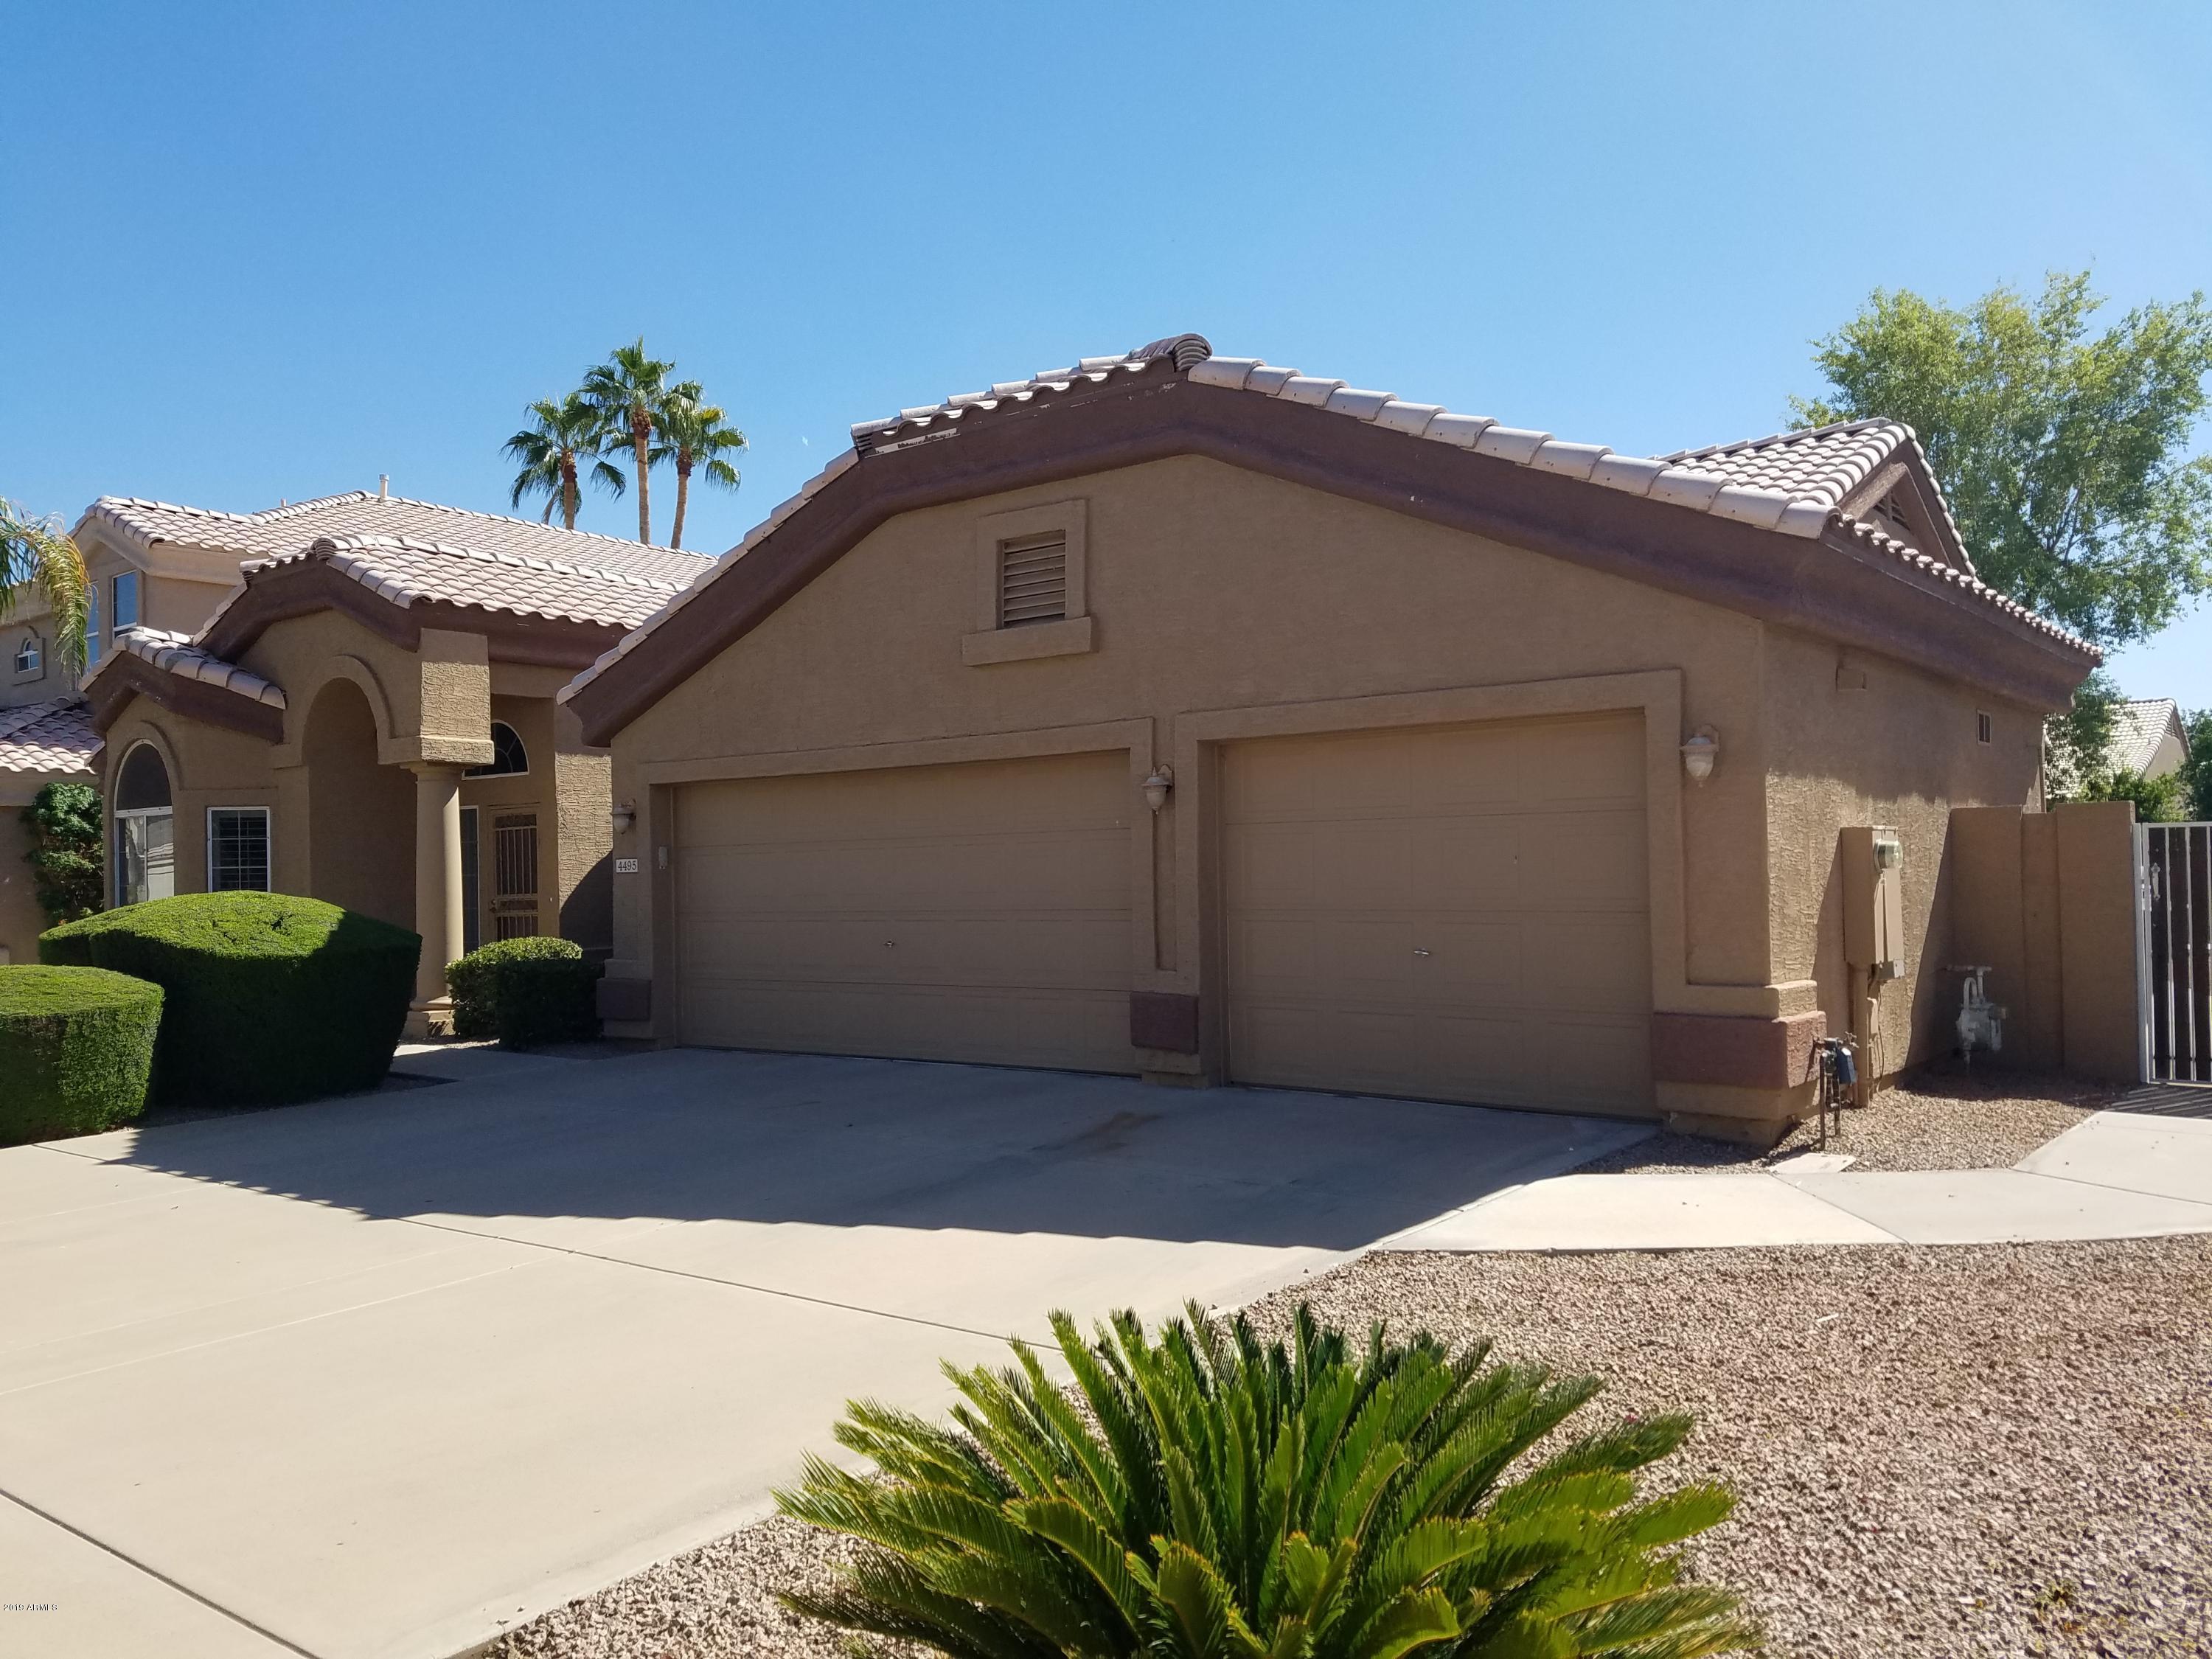 Photo of 4495 E OLIVE Avenue, Gilbert, AZ 85234